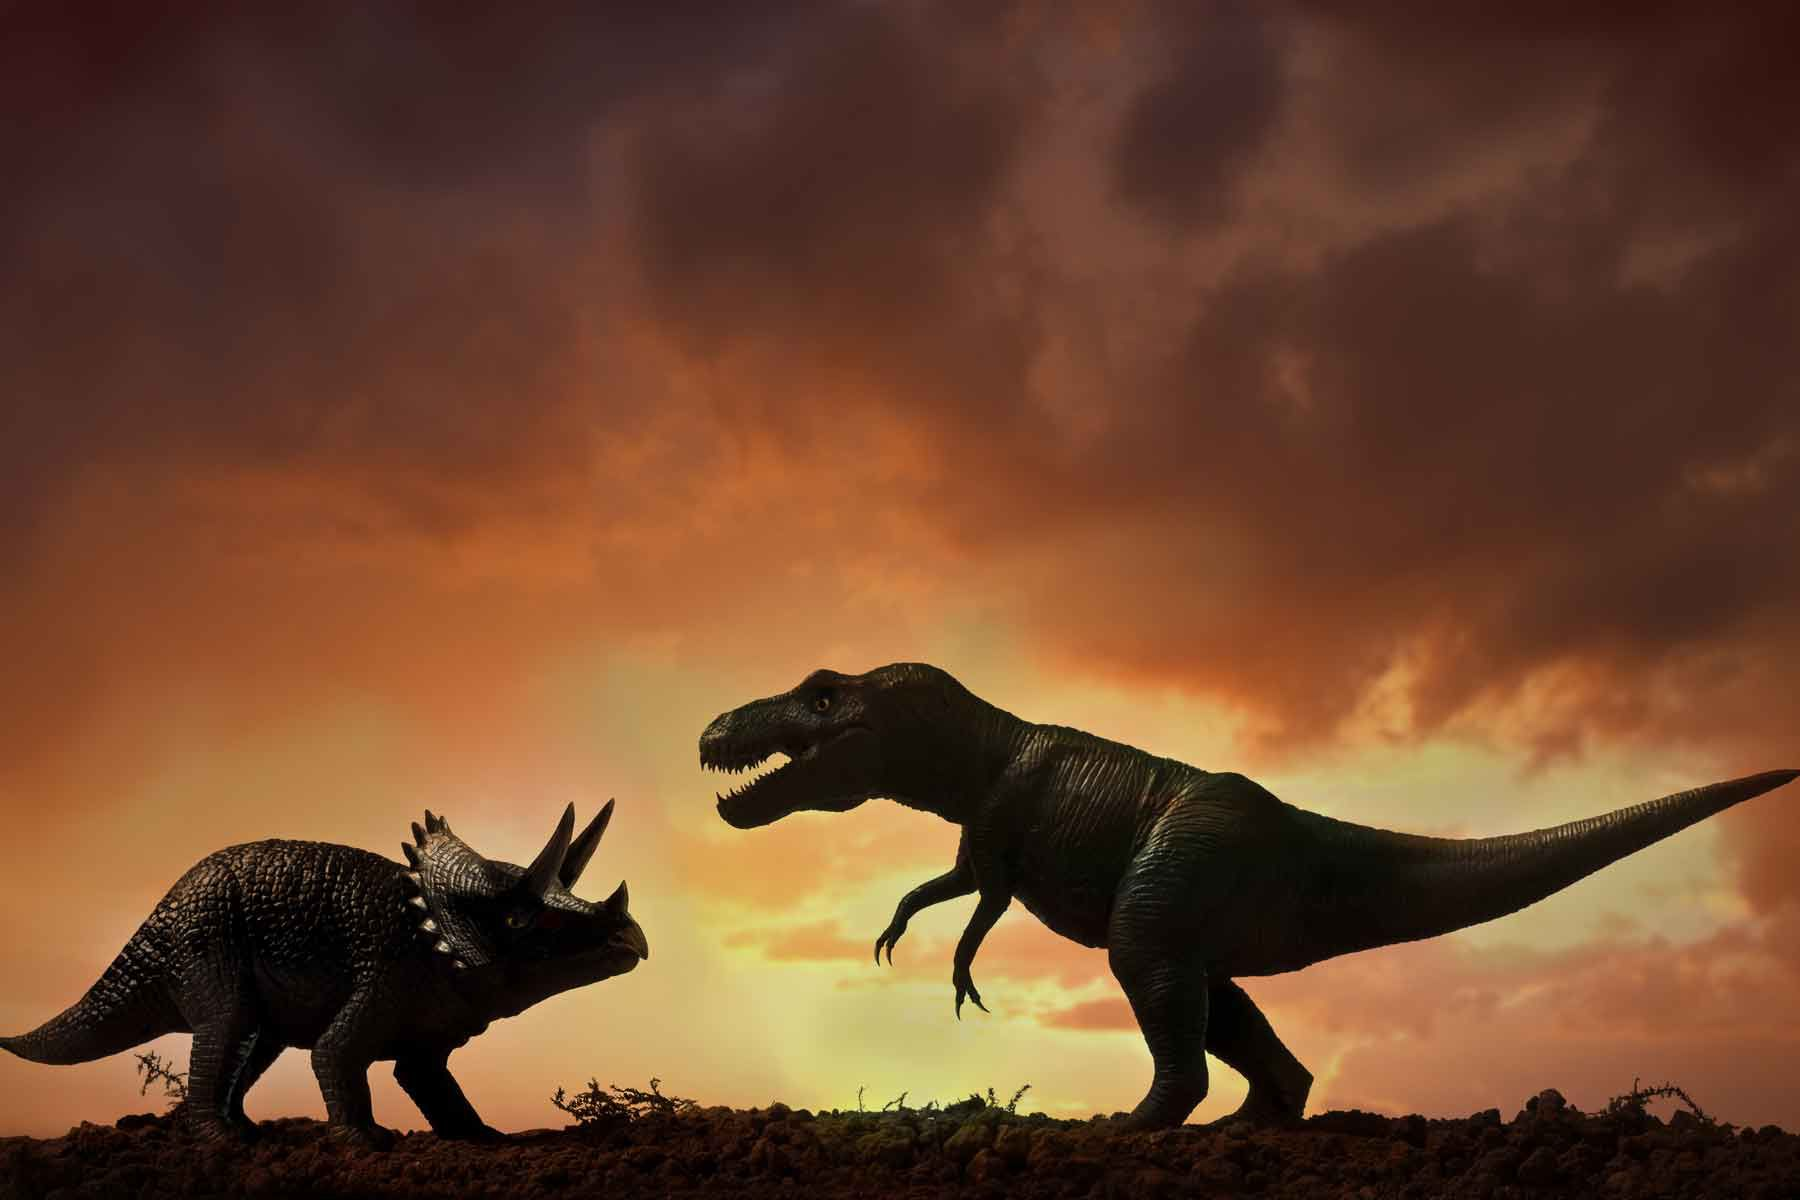 A Triceratops and a Tyrannosaurus Rex.